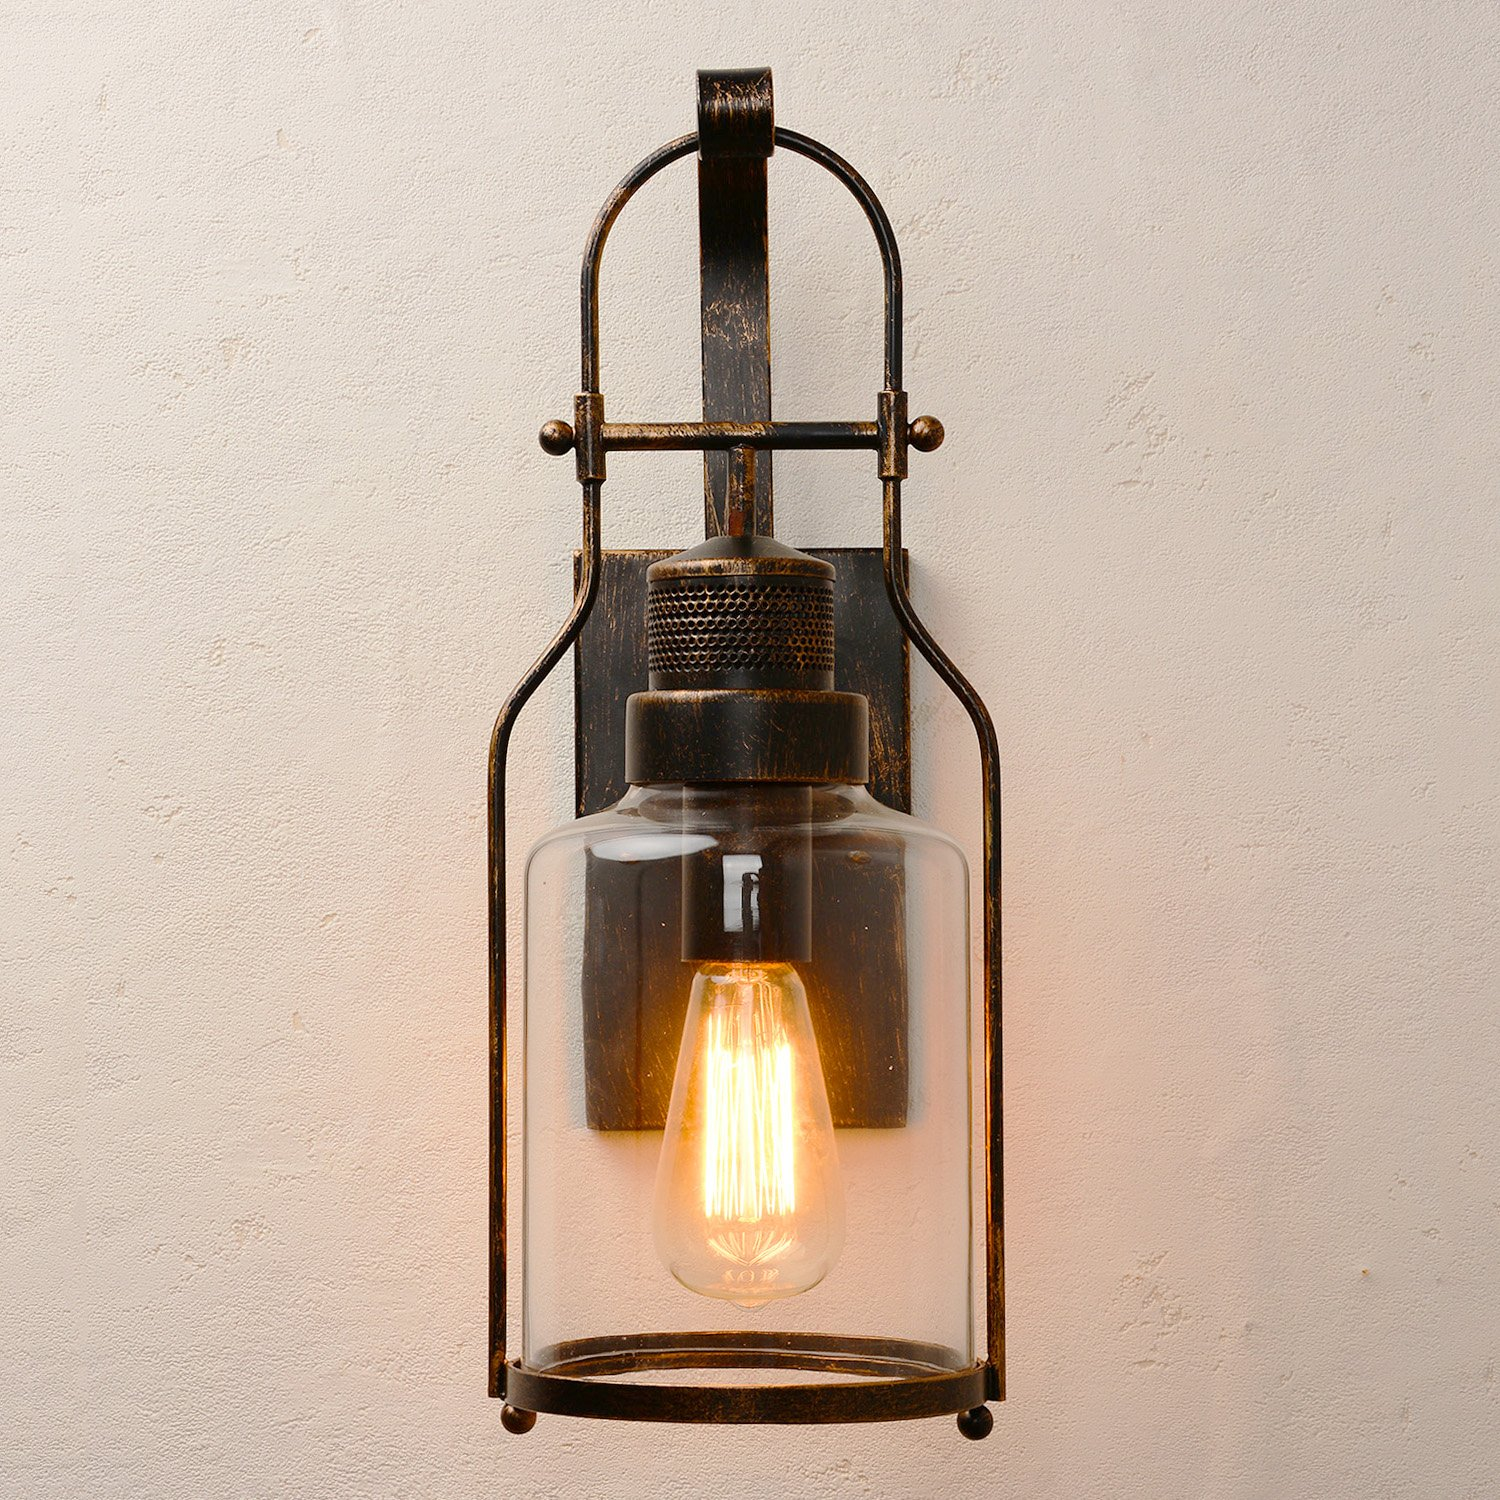 CEENWE Watson Retro Industrial Loft Lantern 1-Light Wall Sconce (Old Bronze)